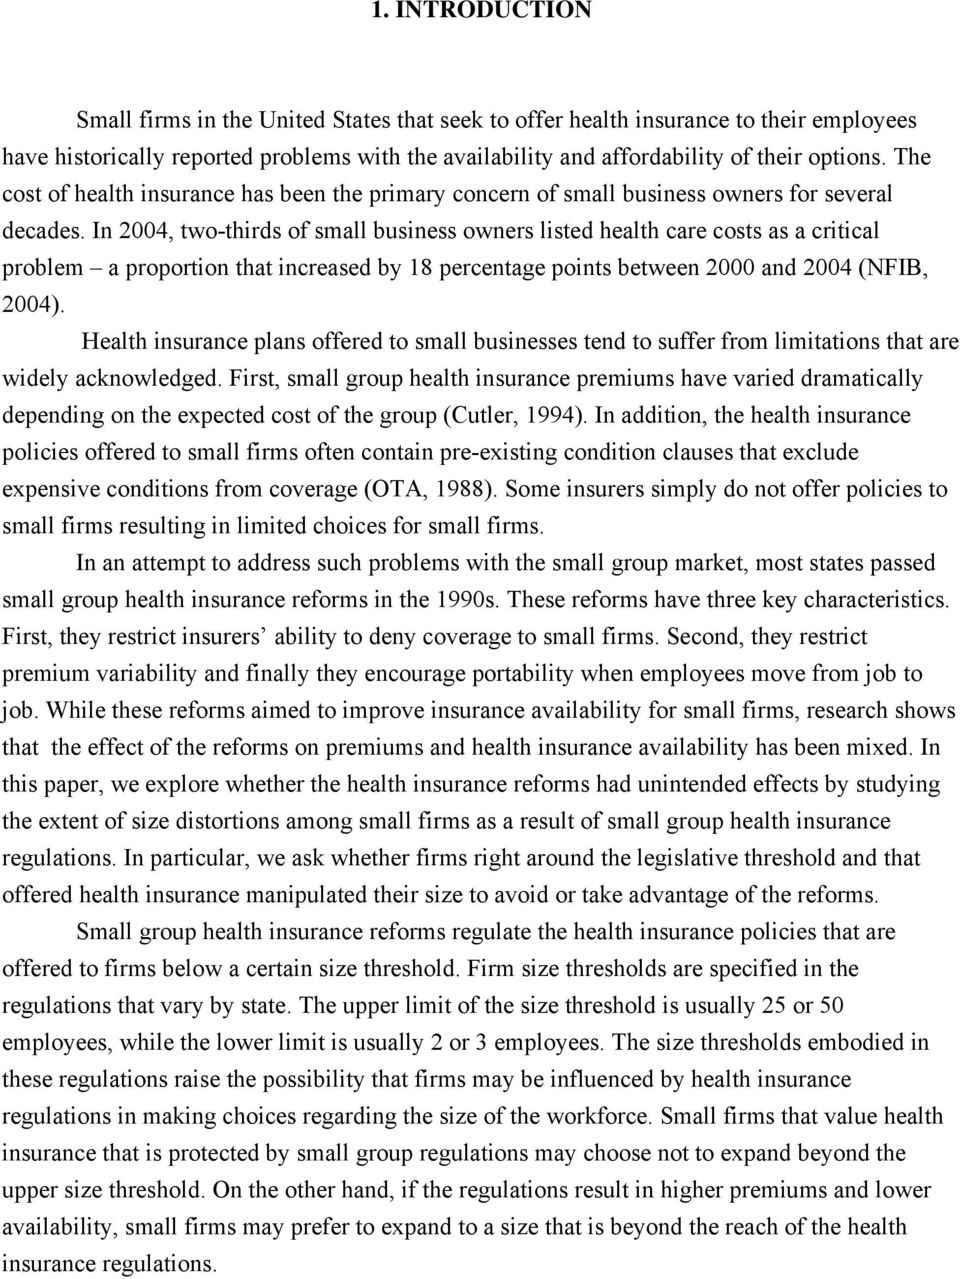 In 2004, two-thirds of small business owners listed health care costs as a critical problem a proportion that increased by 18 percentage points between 2000 and 2004 (NFIB, 2004).